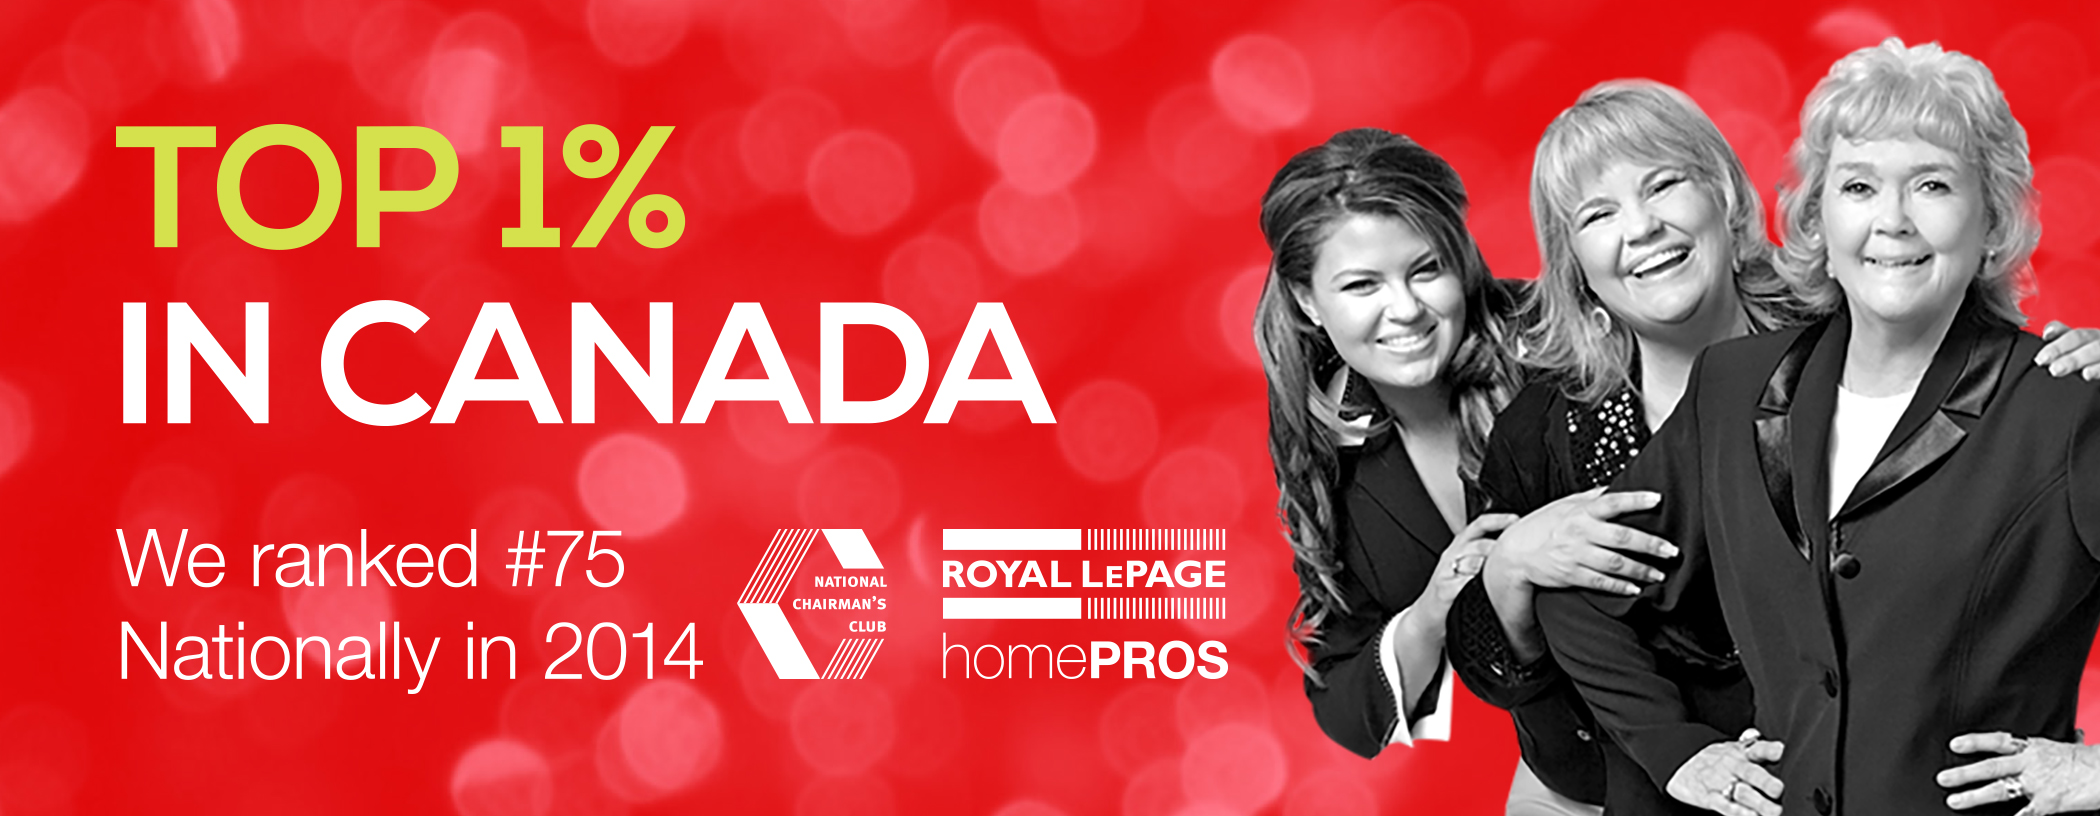 Royal Lepage Home Pros